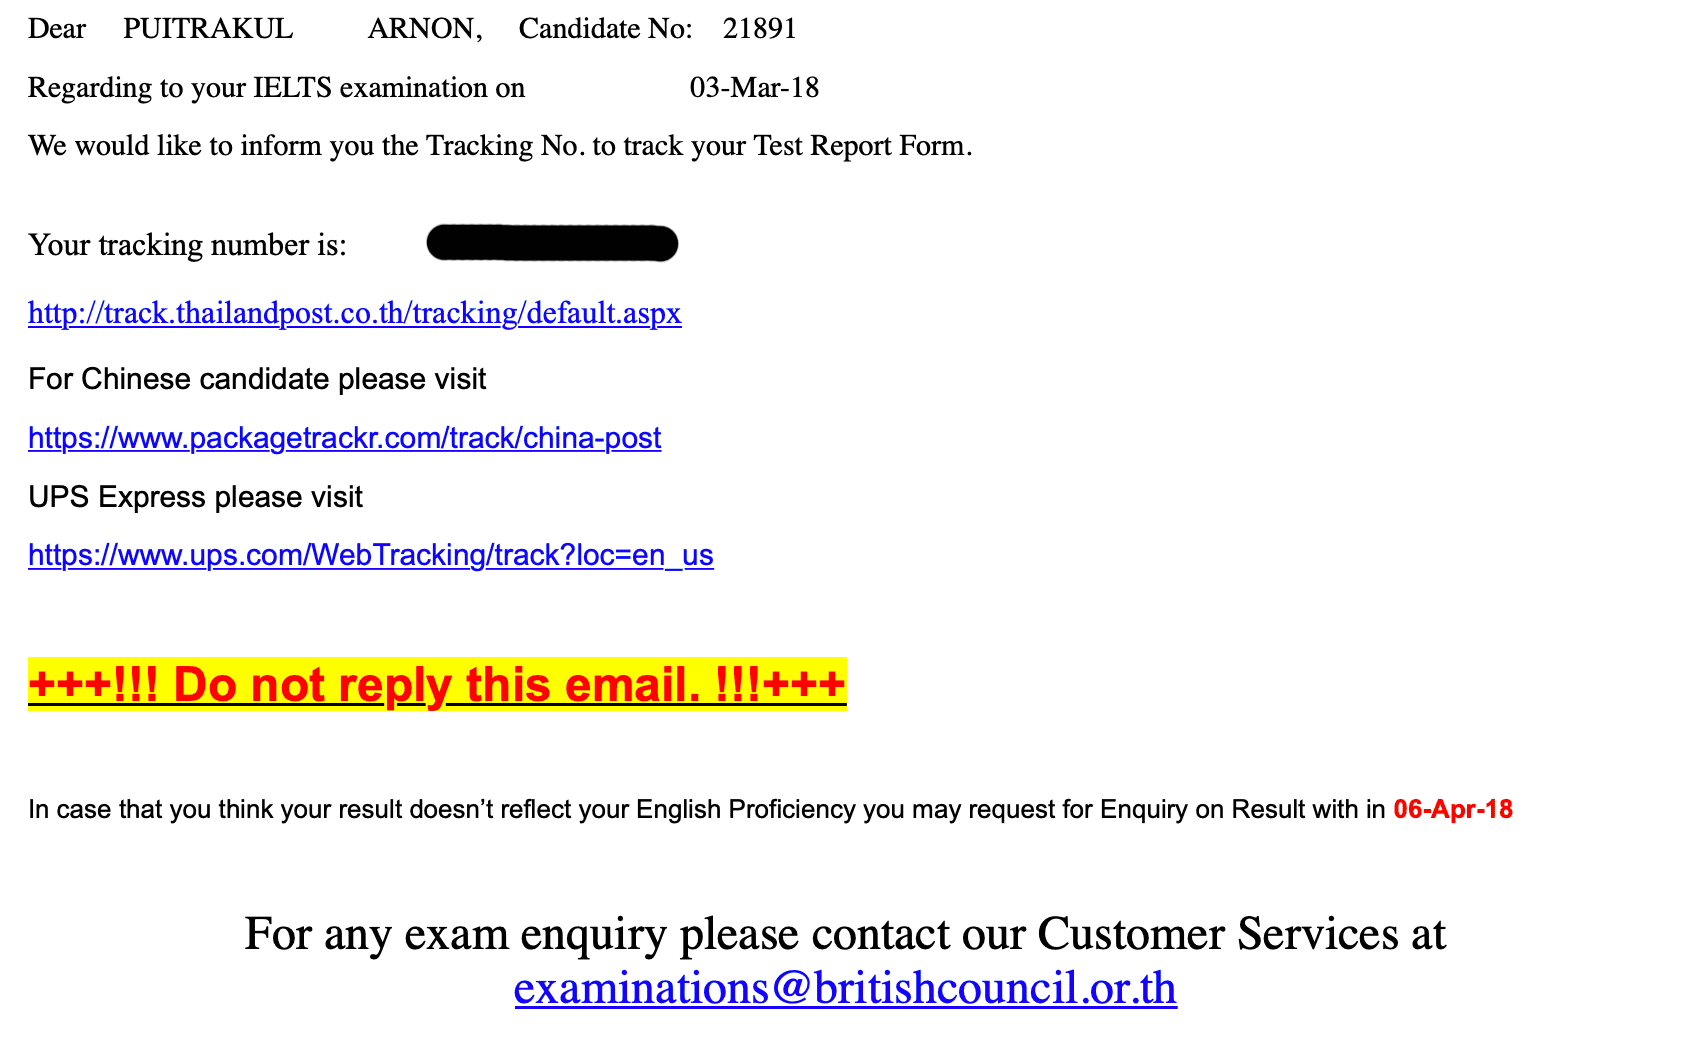 IELTS Mail from British Council